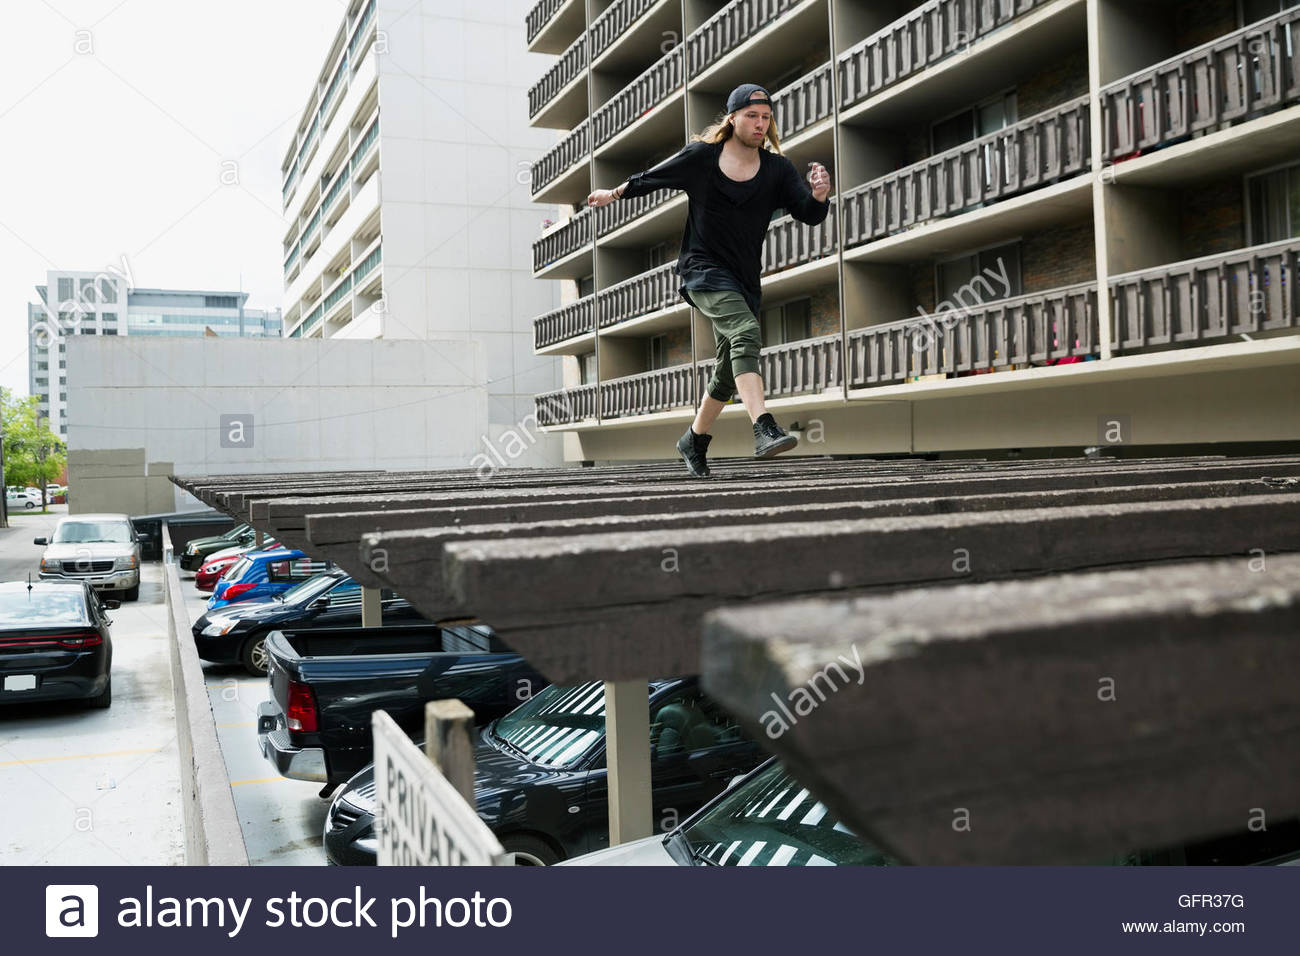 Young man free running on carport roof below urban apartment buildings - Stock Image